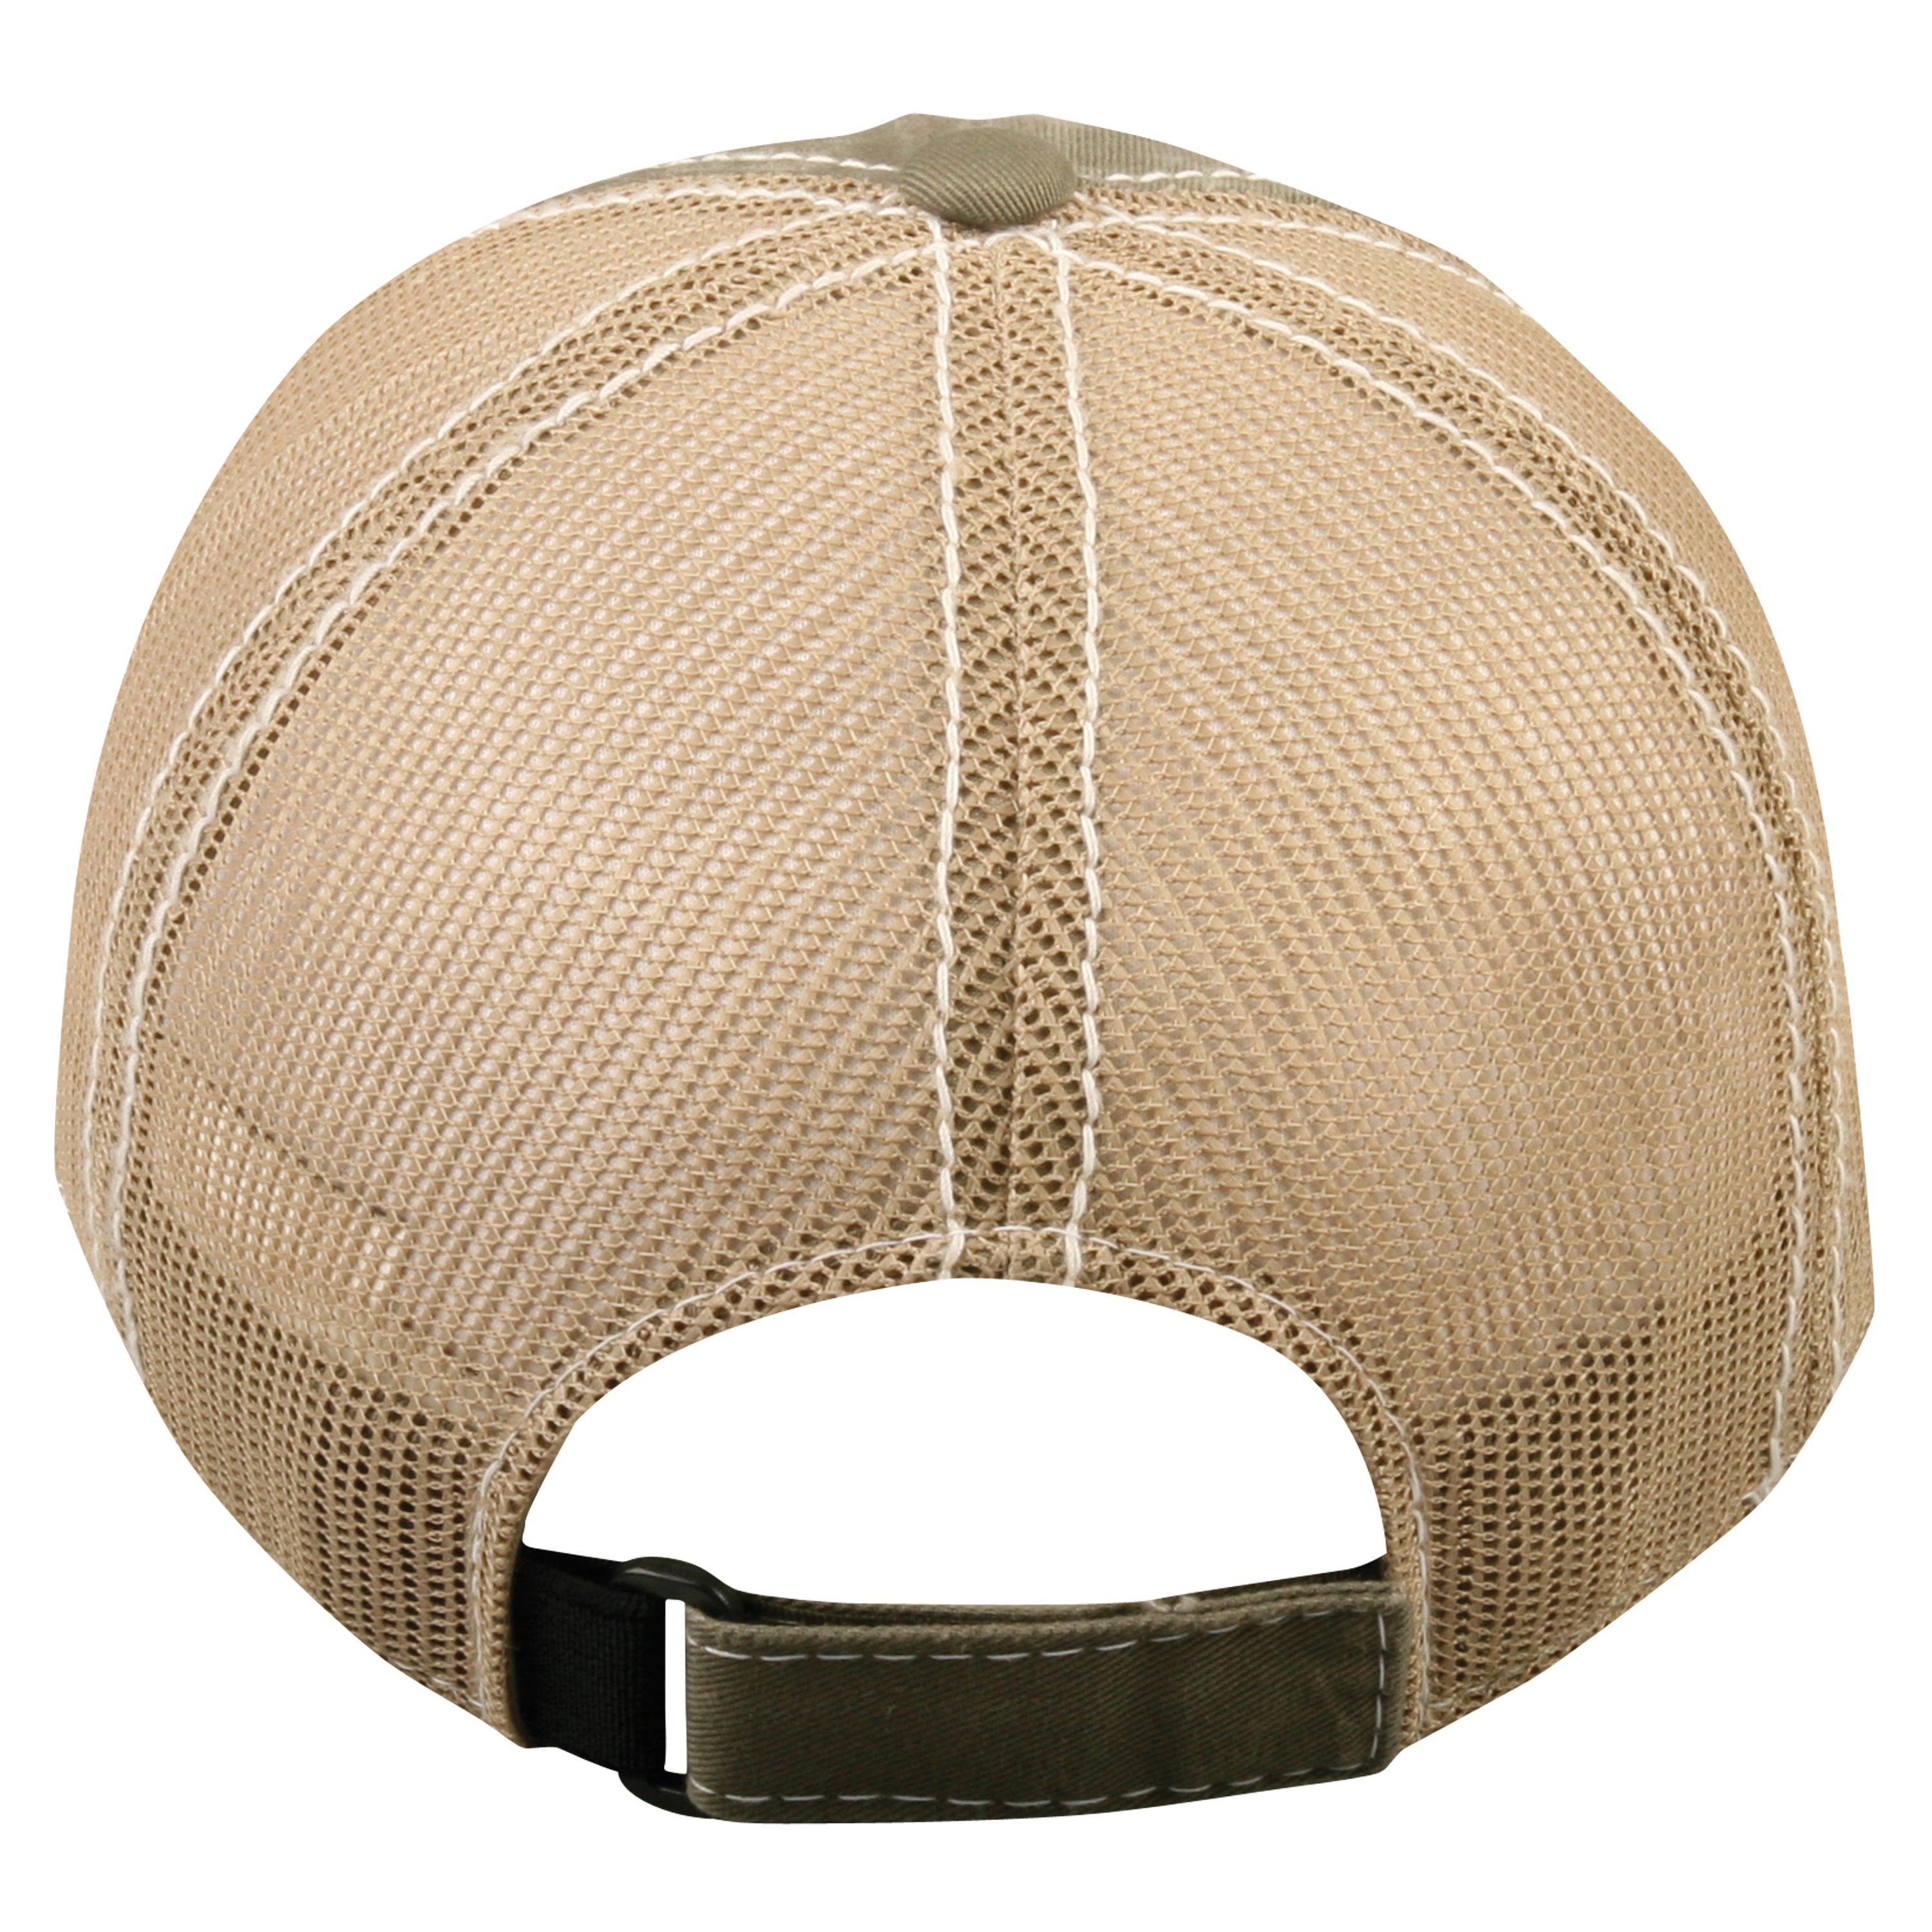 Outdoor Cap Bucketmouth Bass Mesh Back Mid Profile BAS-027